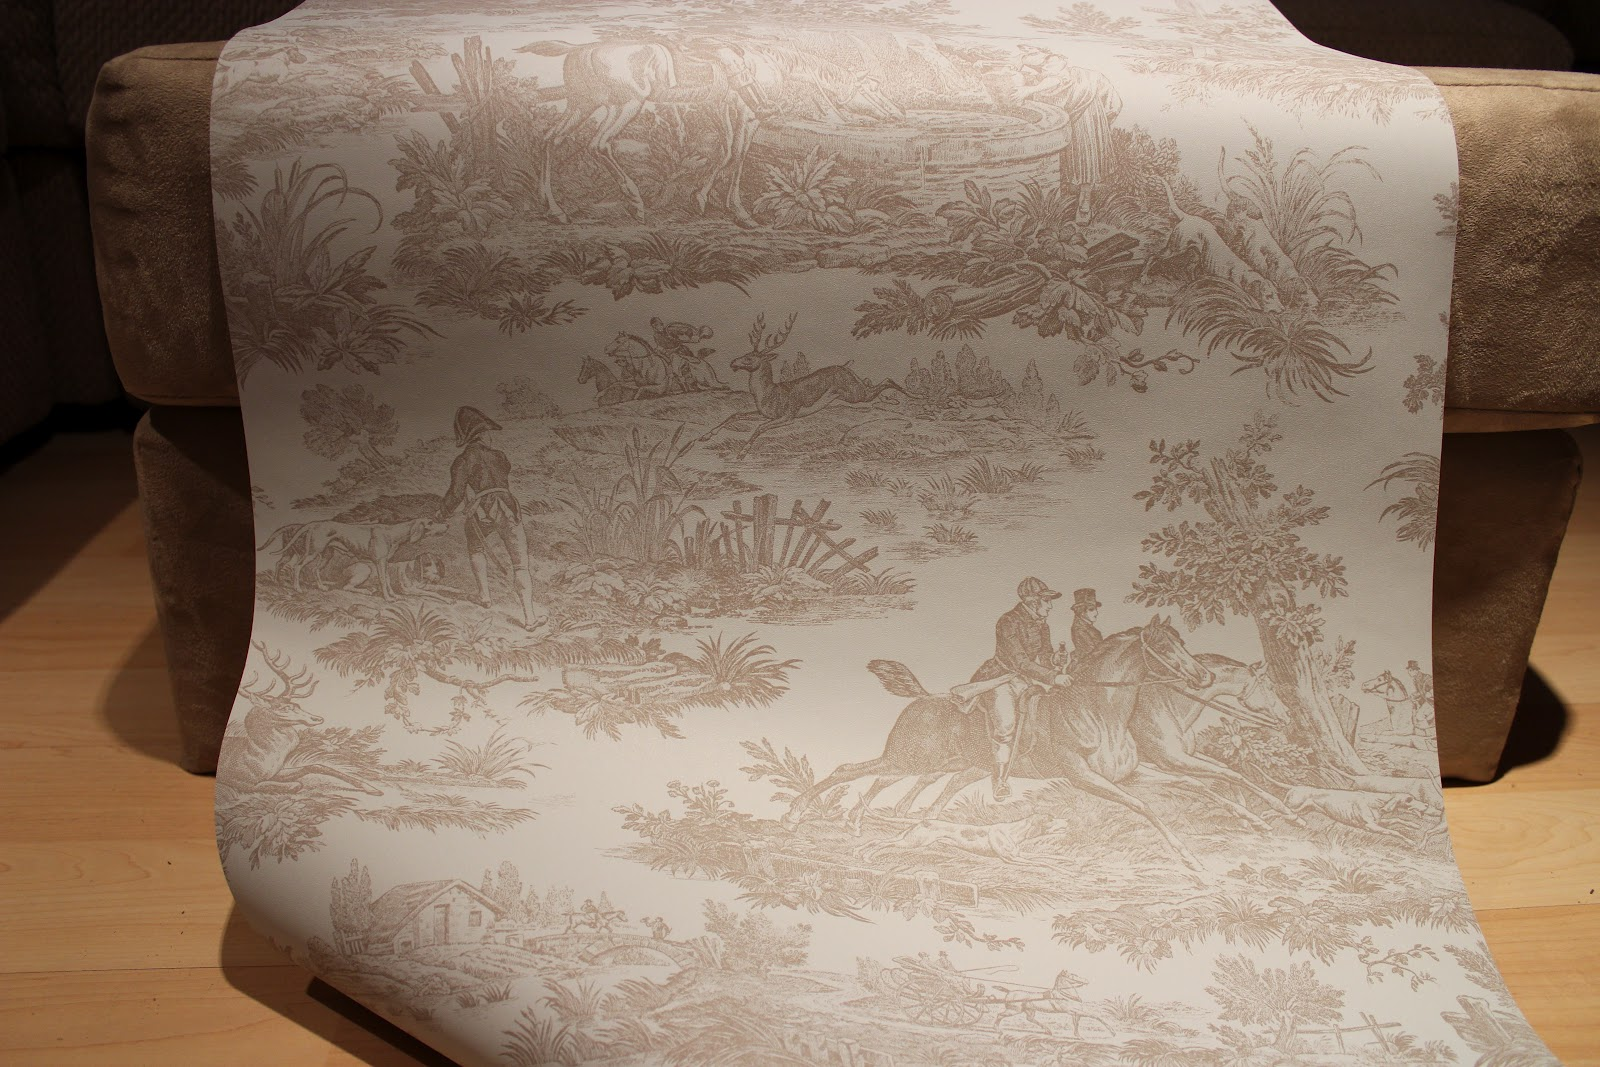 french toile wallpaper the reason behind the toile pattern it 1600x1067